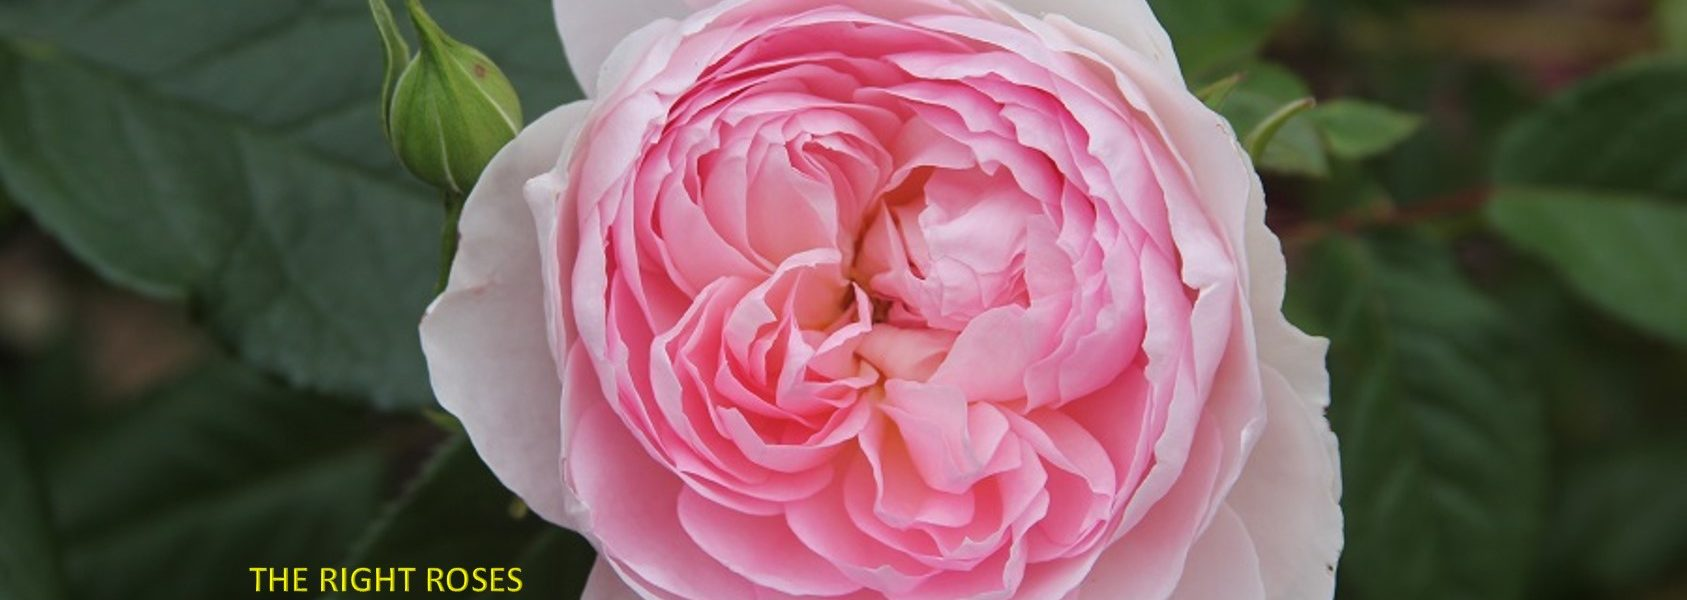 Silas Marner rose review the right roses score best top garden store david austin english roses rose products rose rating the right leap rose food fertilizer